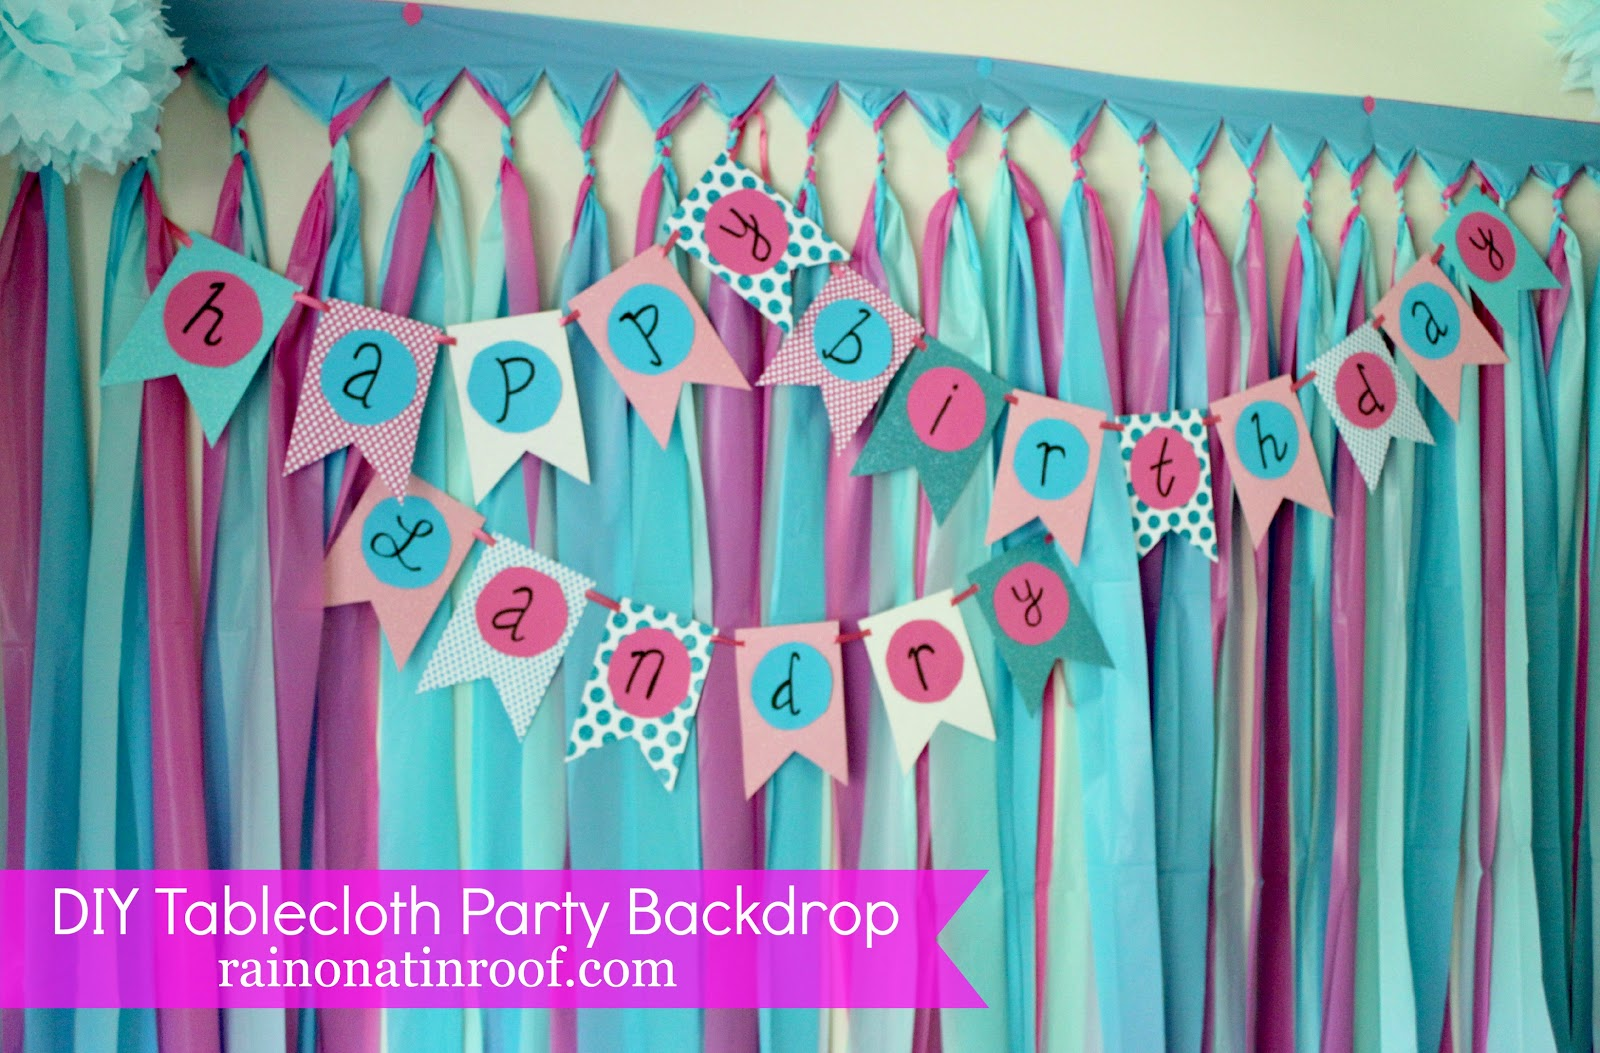 Diy Party Background For 5 Or Less Rh Rainonatinroof Com